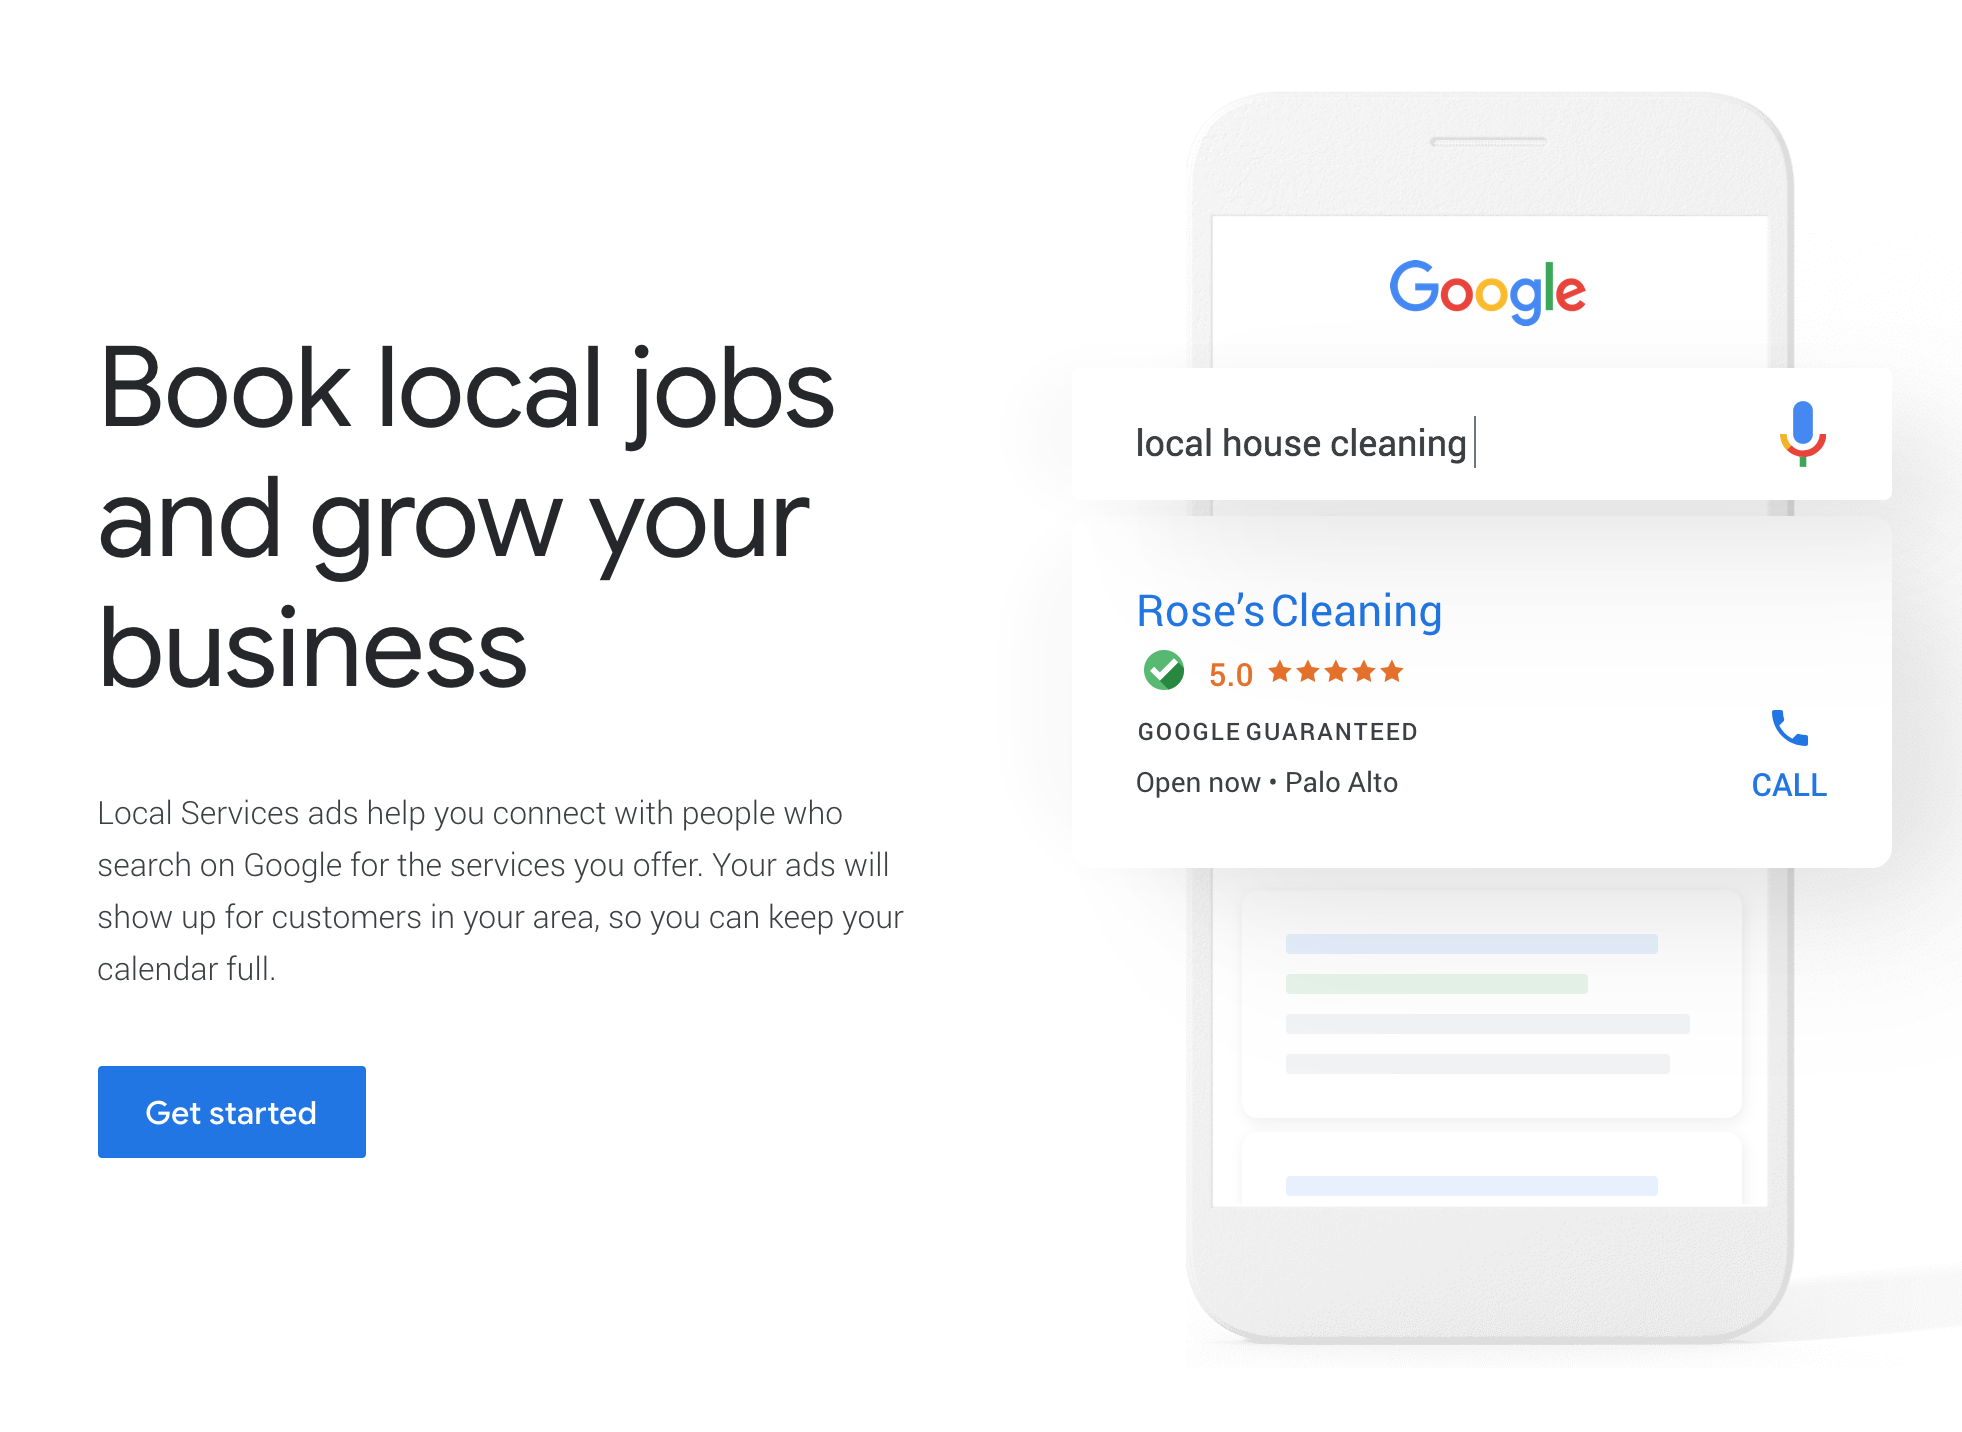 A landing page for setting up Google local service ads